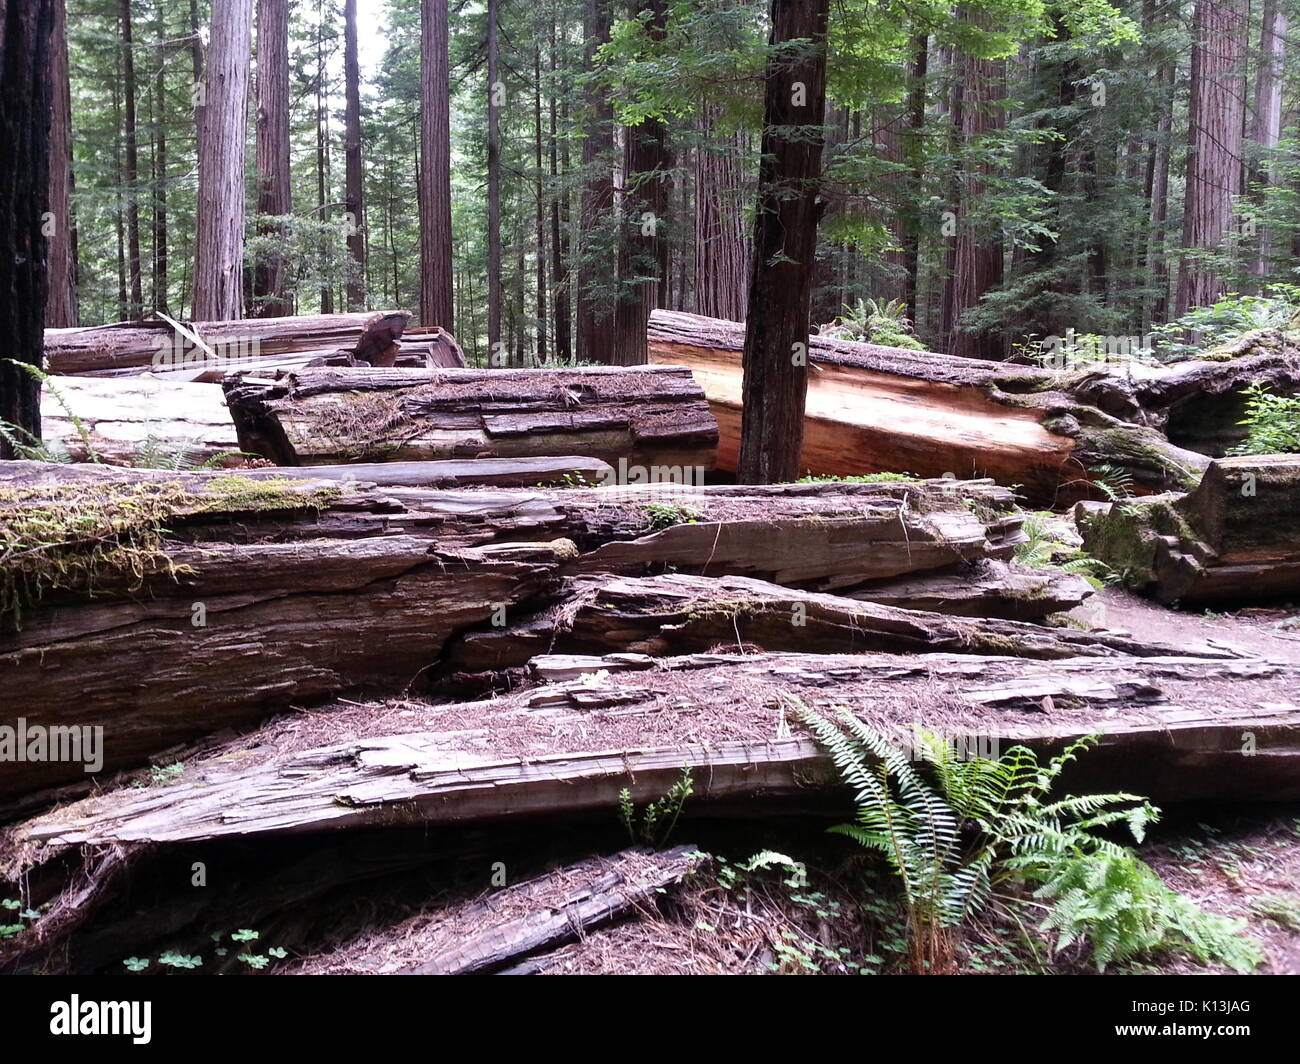 Bed of Fallen Trees - Stock Image